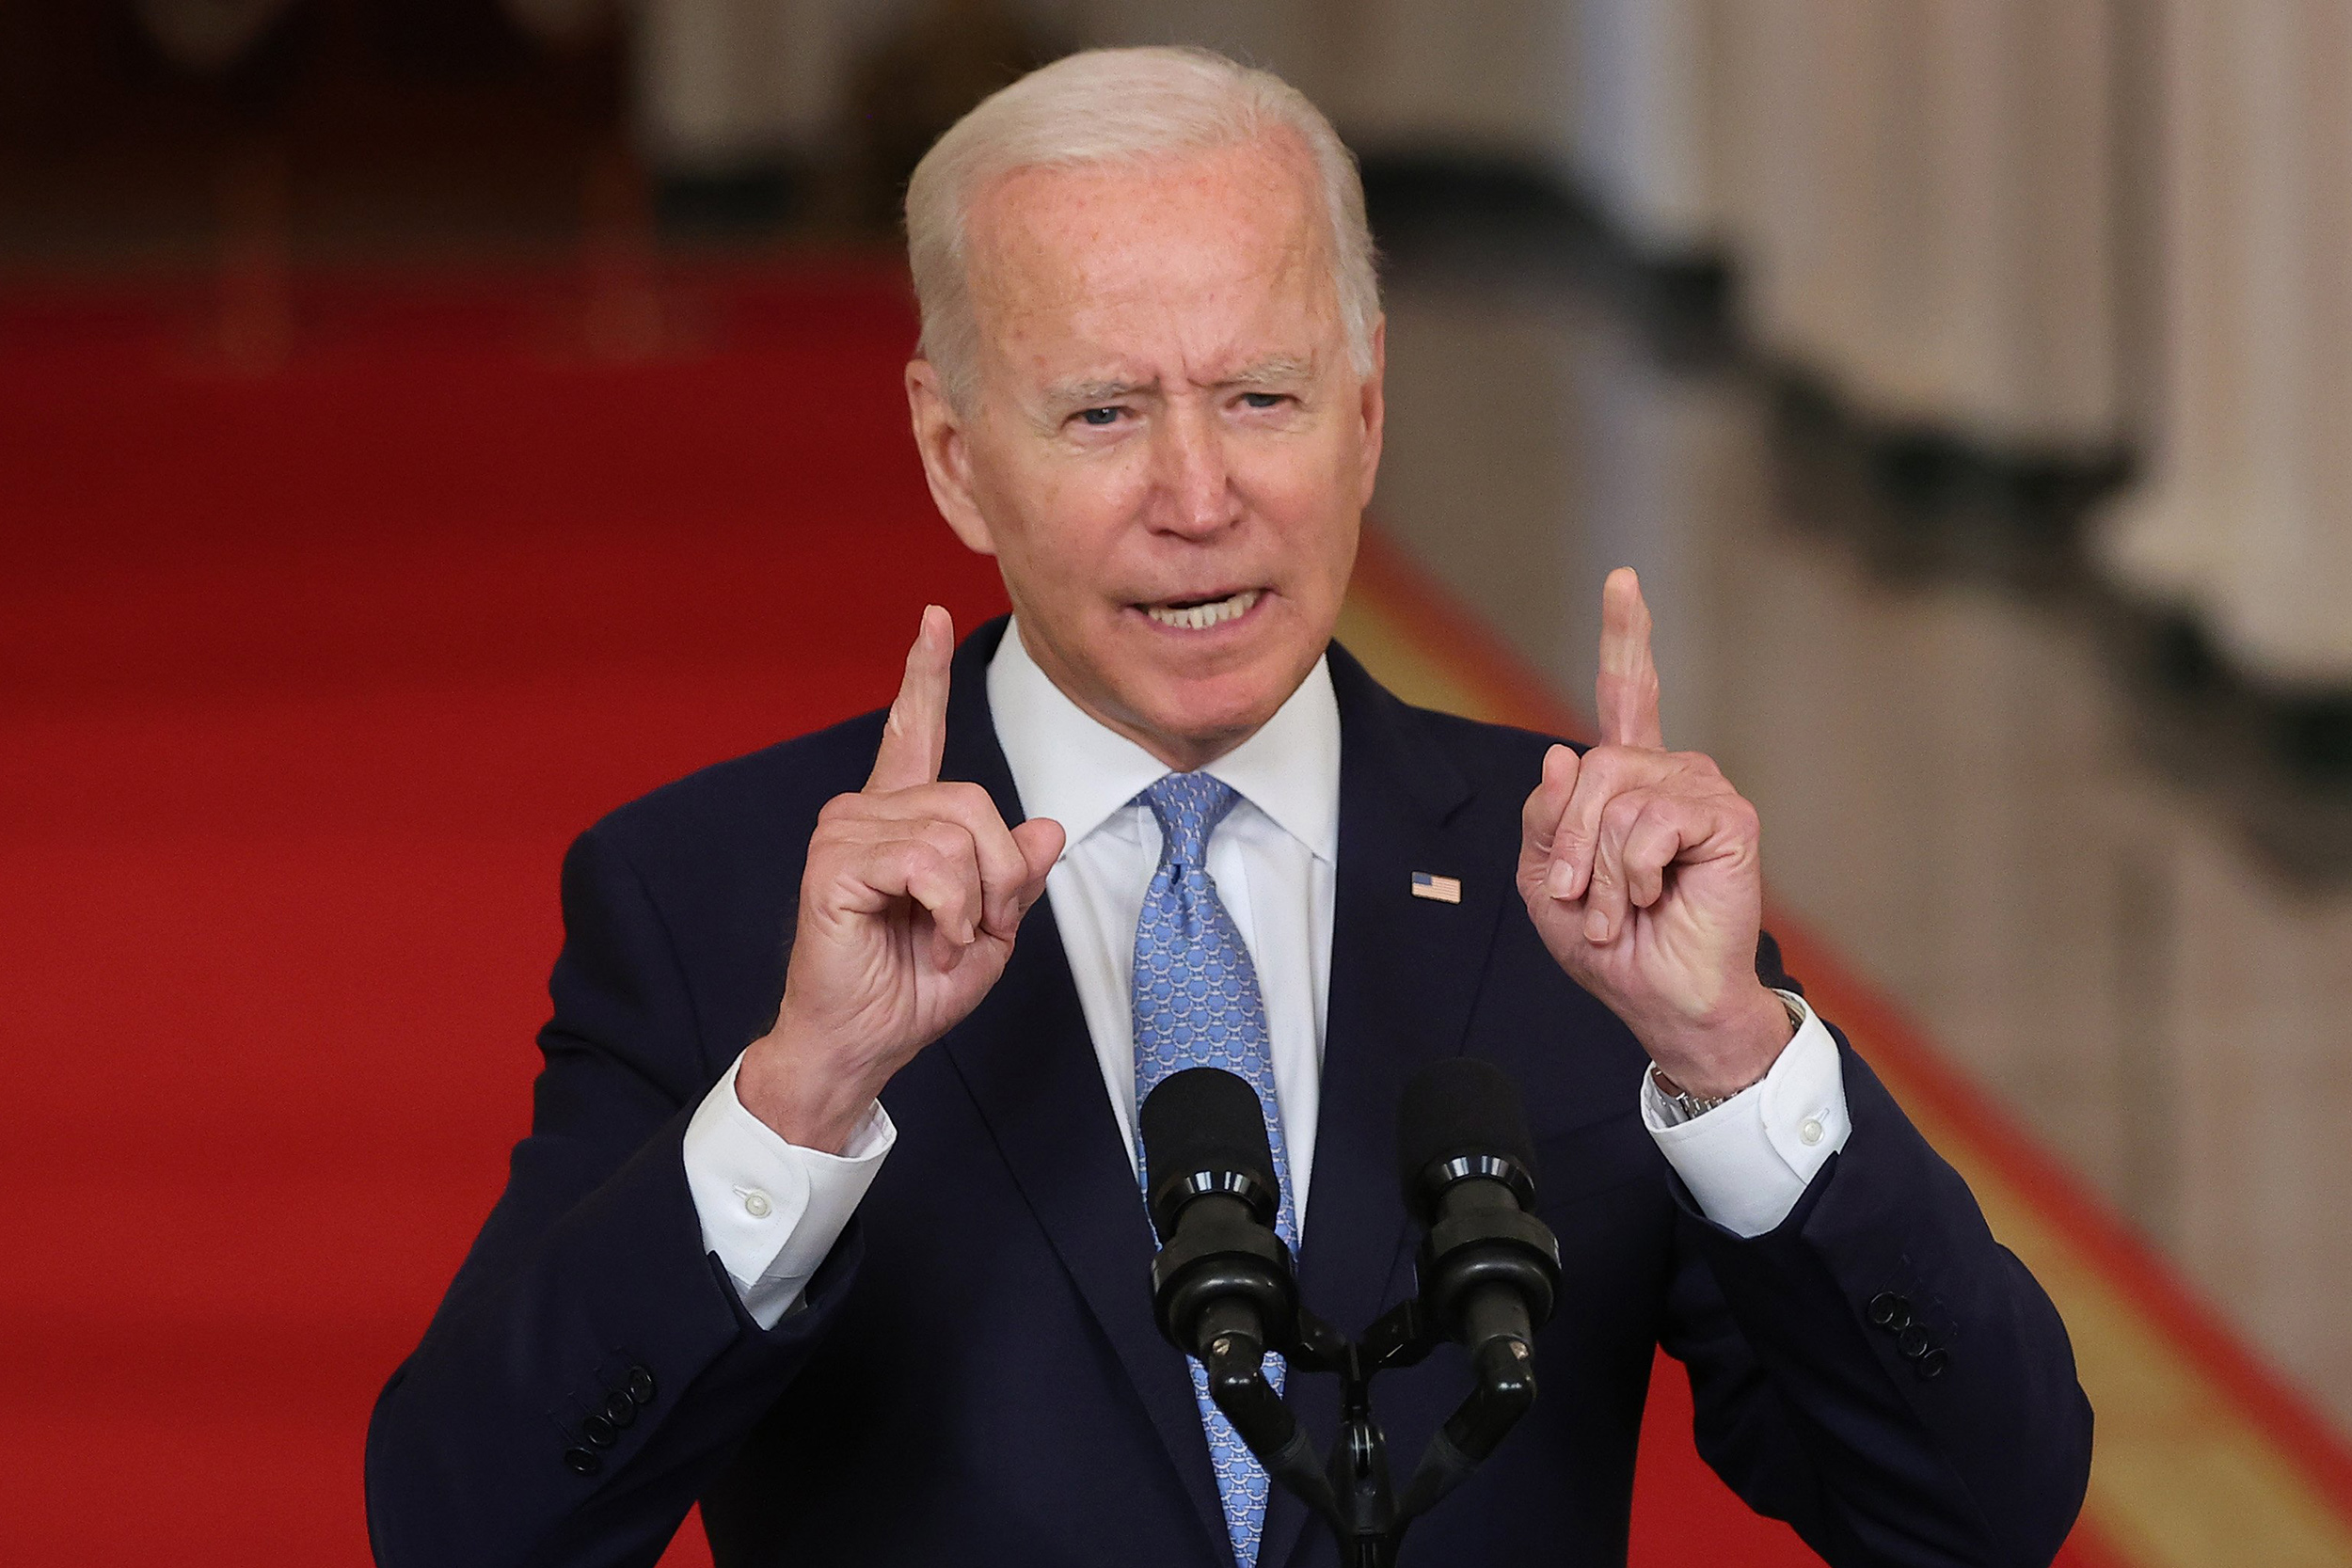 Biden criticizes Texas' severe new abortion law, vows to defend abortion rights